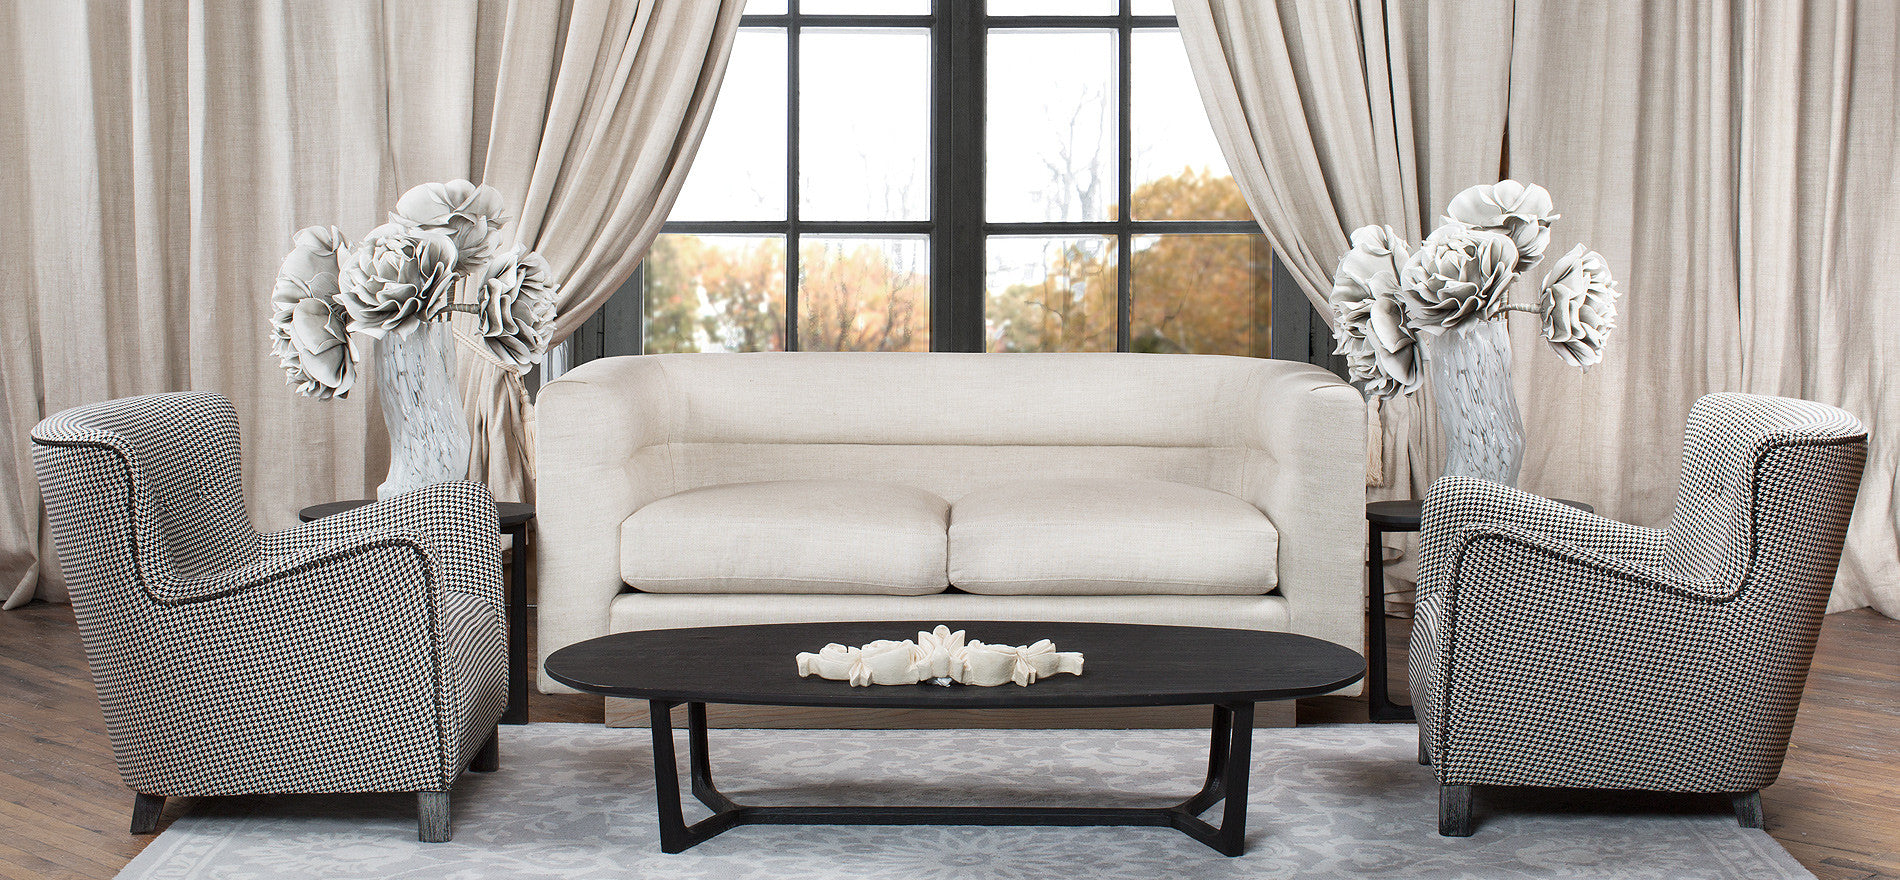 High End Furniture | Luxury Furniture | High End Furniture Stores